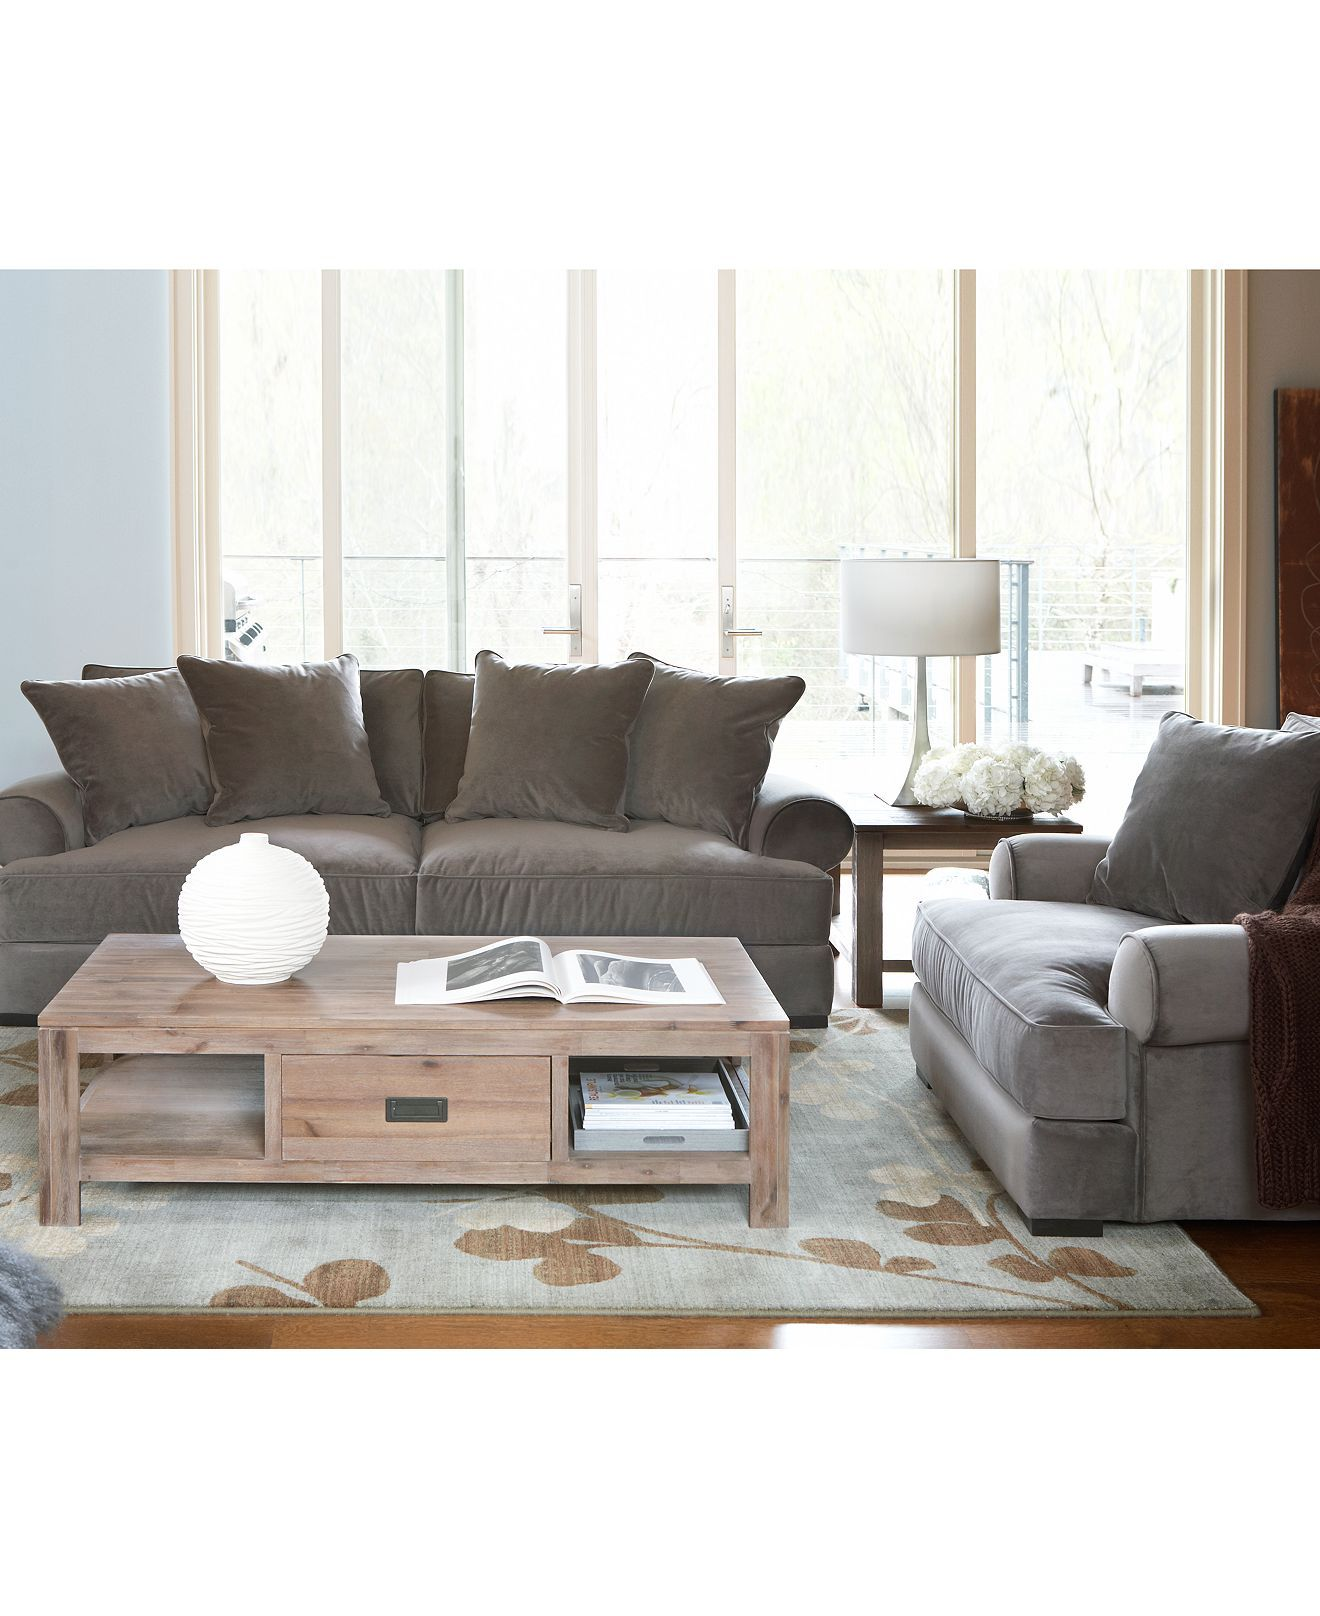 Couch And Loveseat I Want To Get Furniture Living Room Sets Furniture Living Room Furniture [ 1616 x 1320 Pixel ]